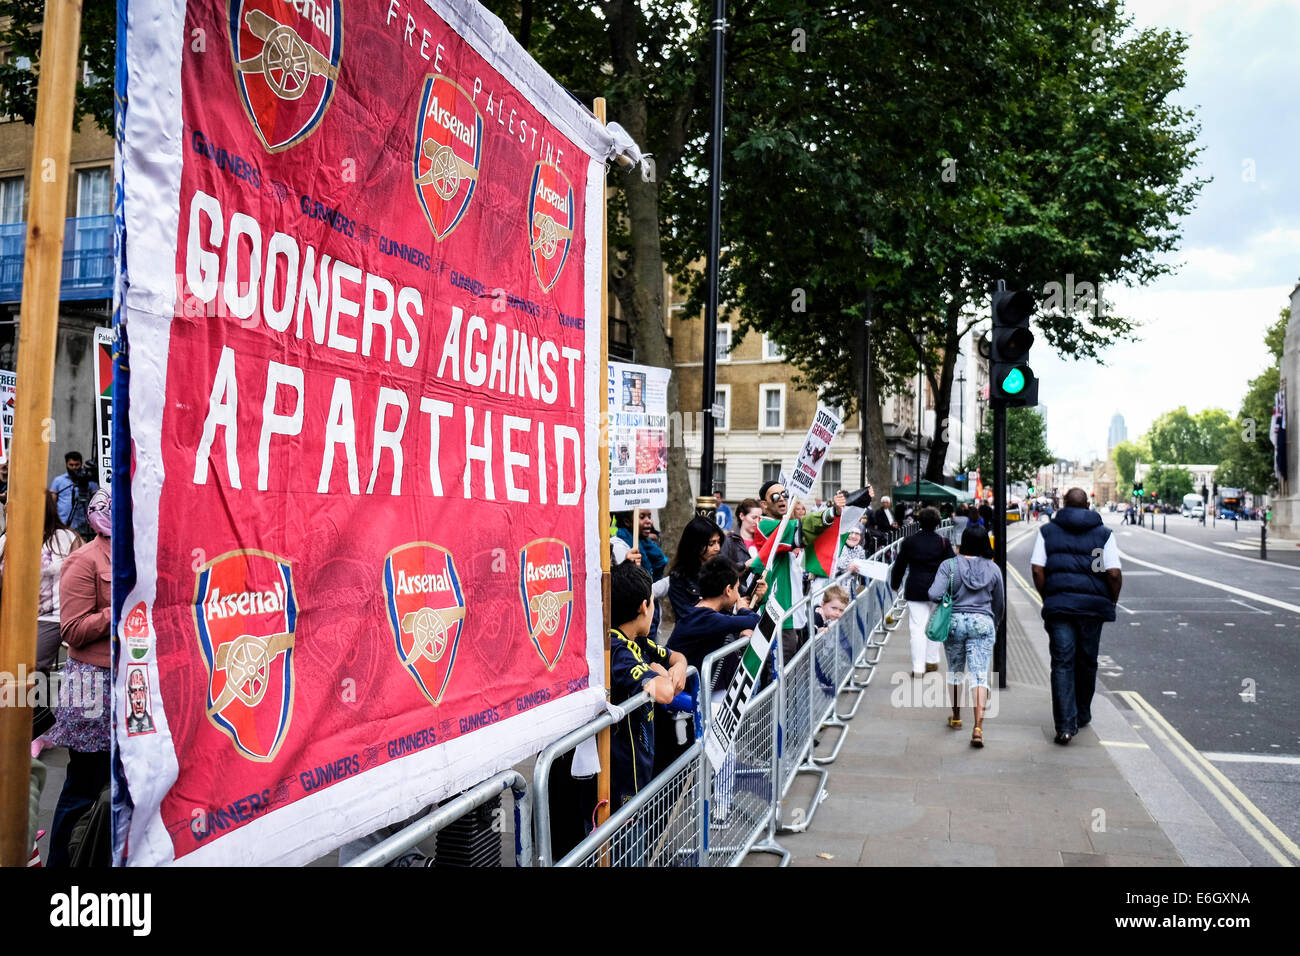 London, UK. 23rd August, 2014. An Arsenal banner supporting the pro-Palestinian protest outside Downing street. - Stock Image